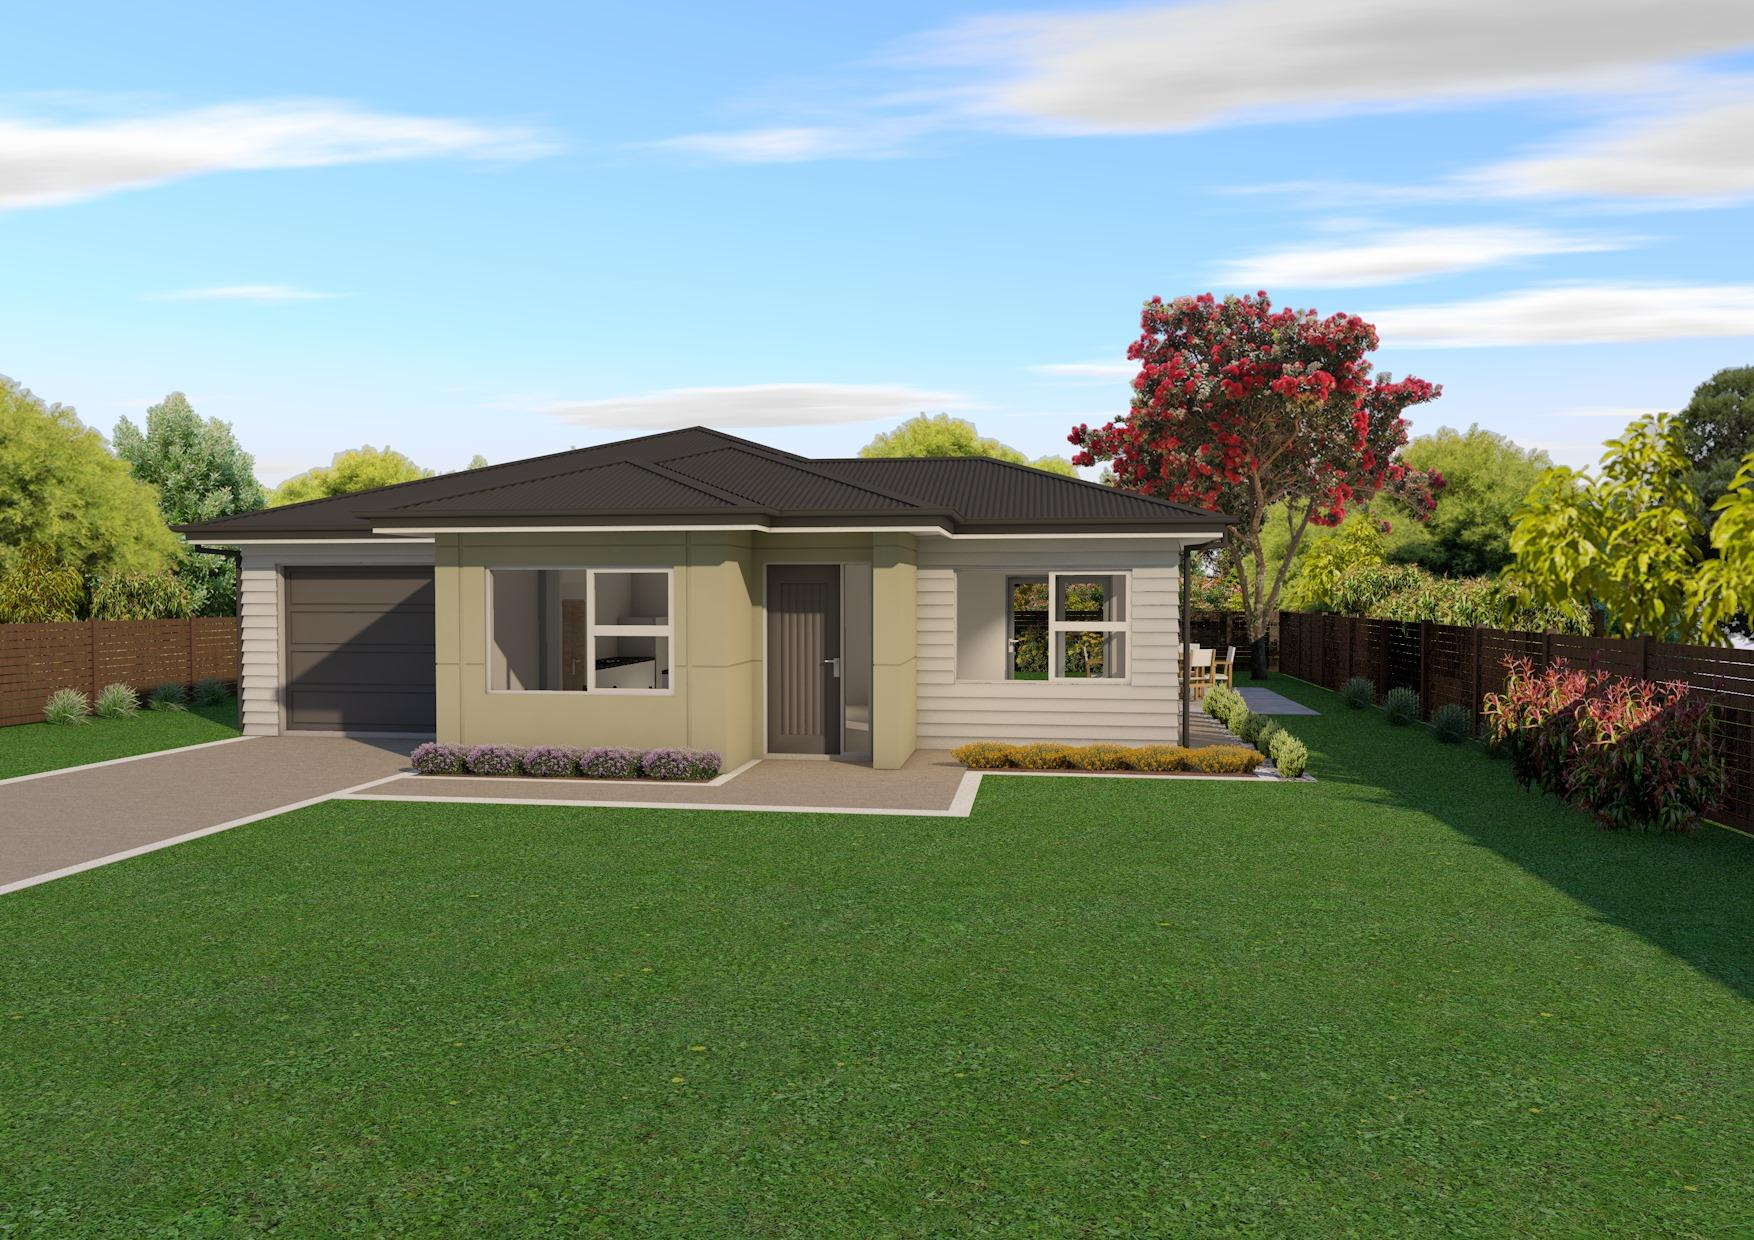 Preview Plans Kakapo 4 8028 2 2 Bdrm 1 bath 1